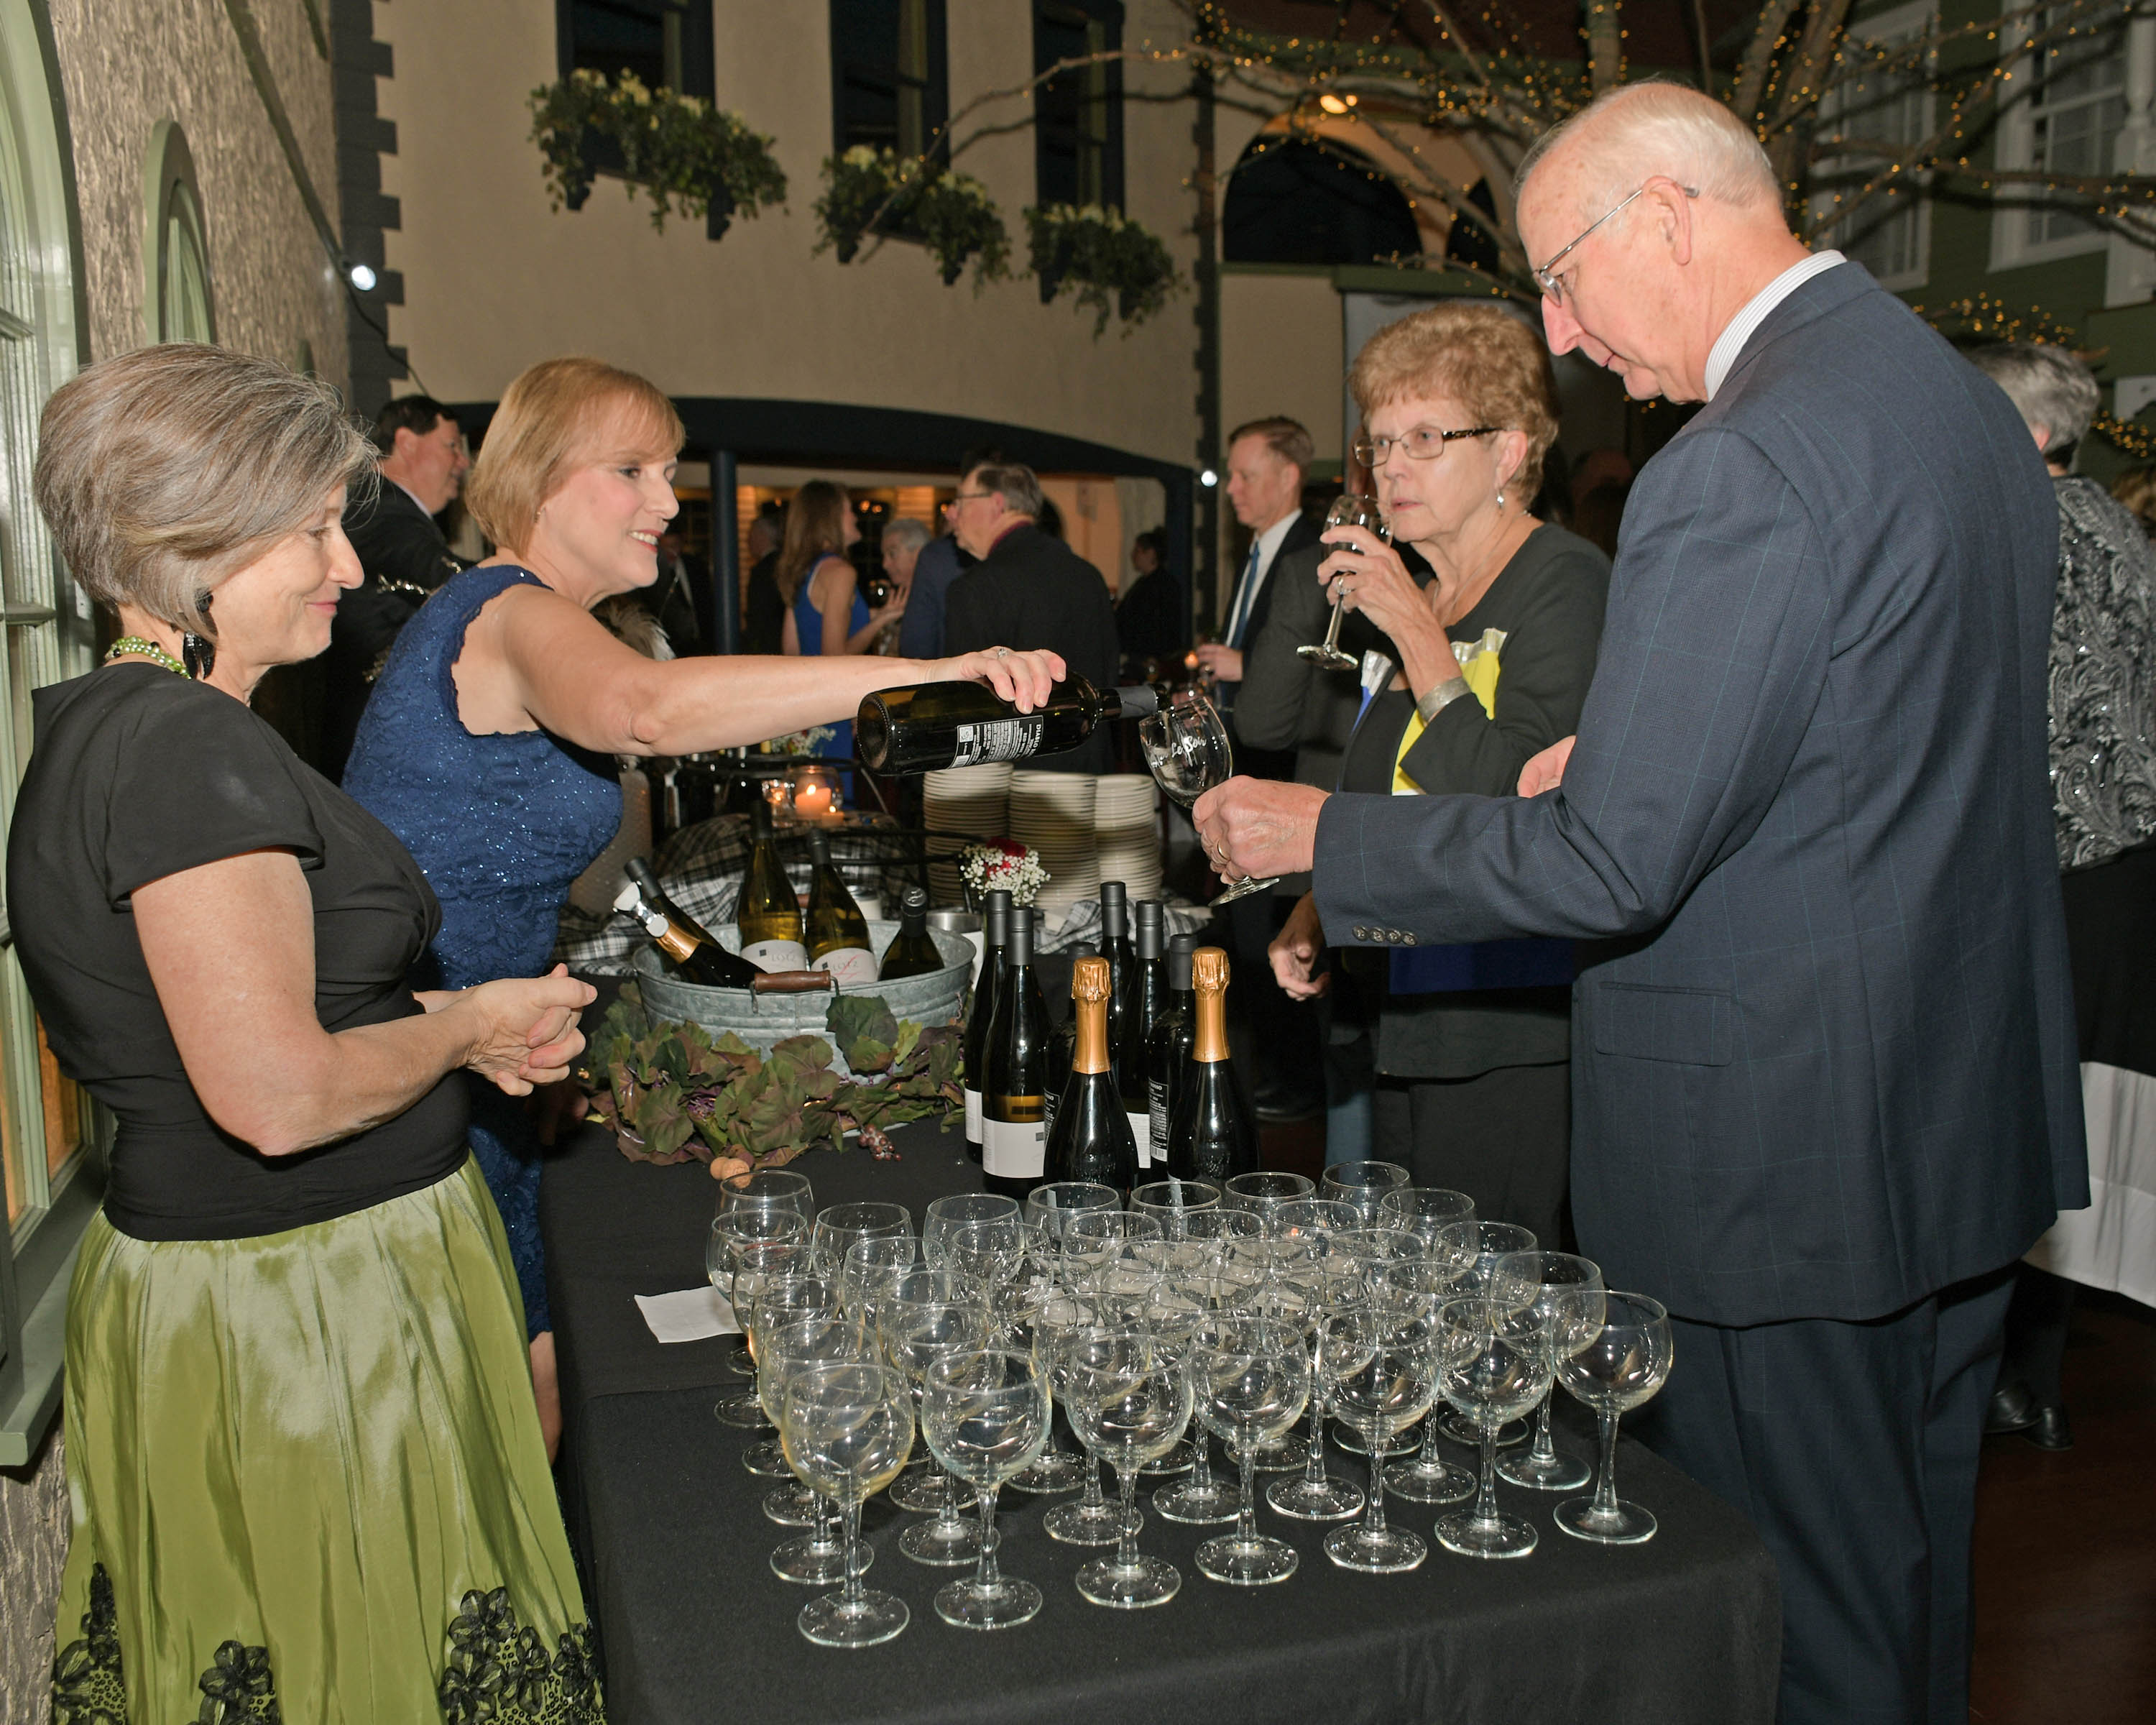 Vin Le Soir to benefit AIM Services, Inc. couple getting wine poured